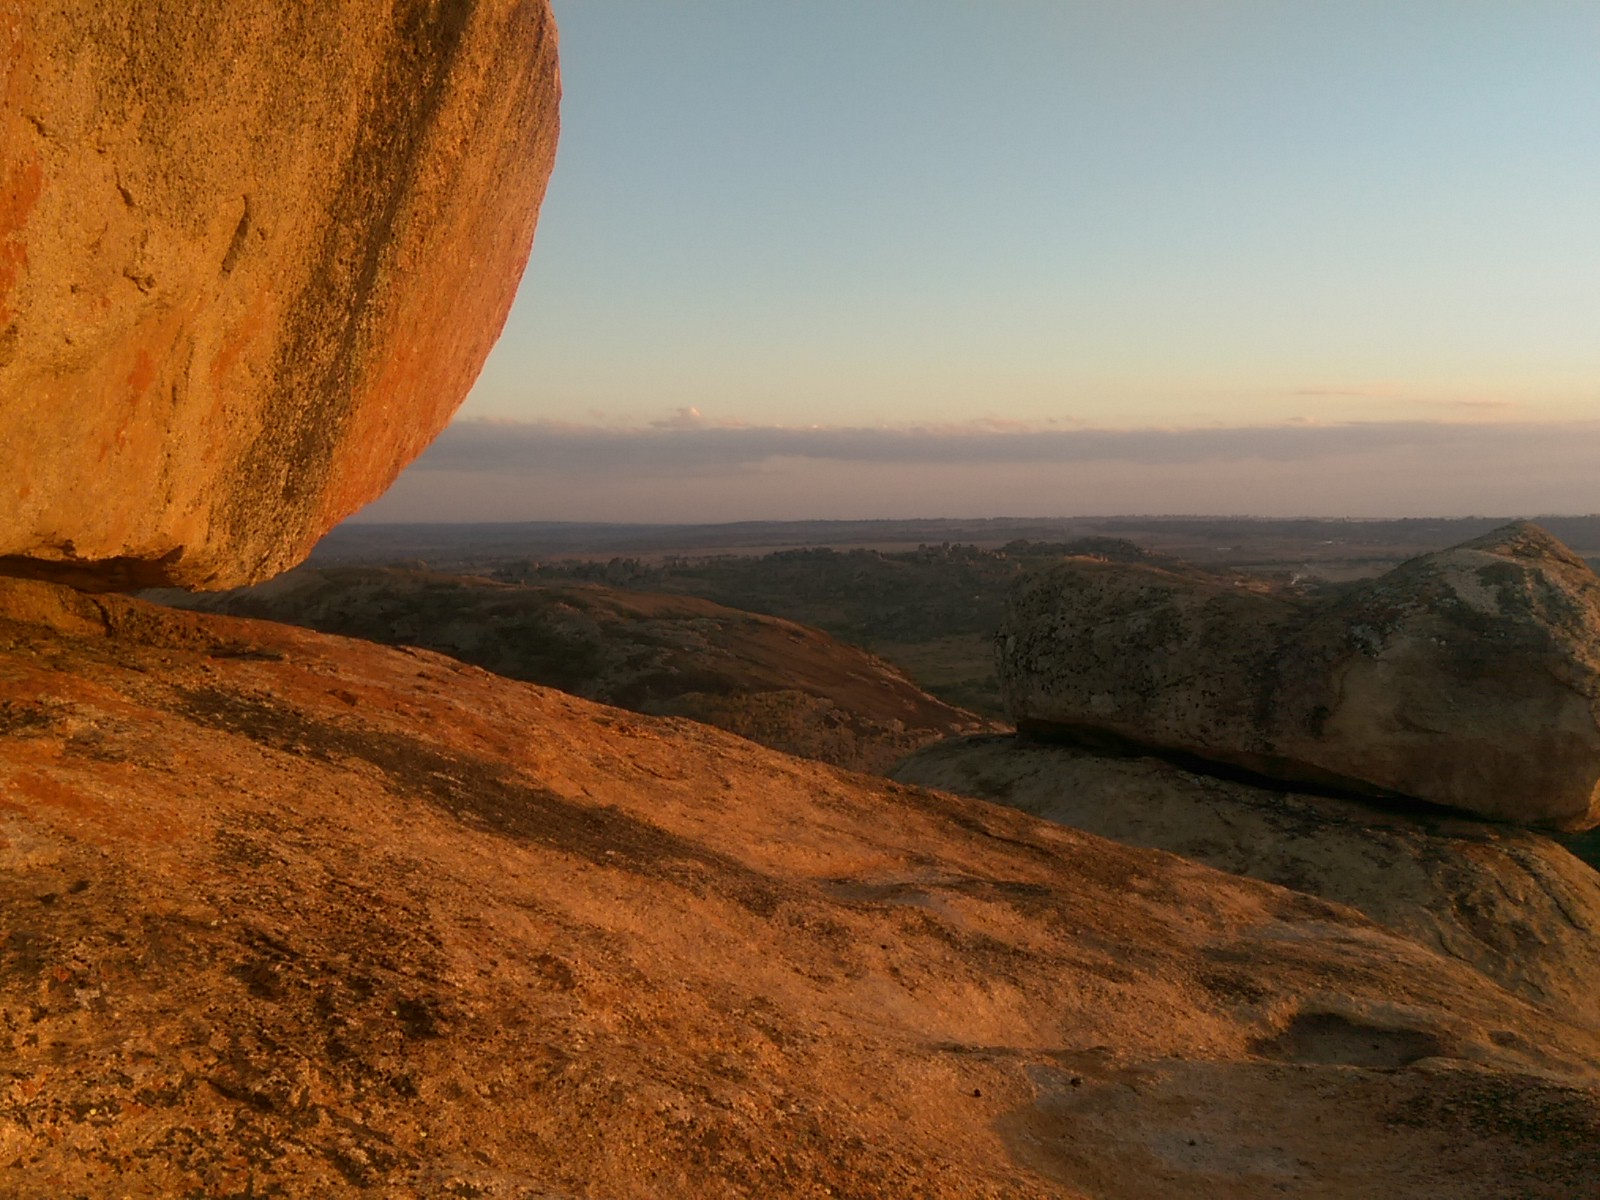 The edge of a large rock with a dusky sky and more rocks in the distance